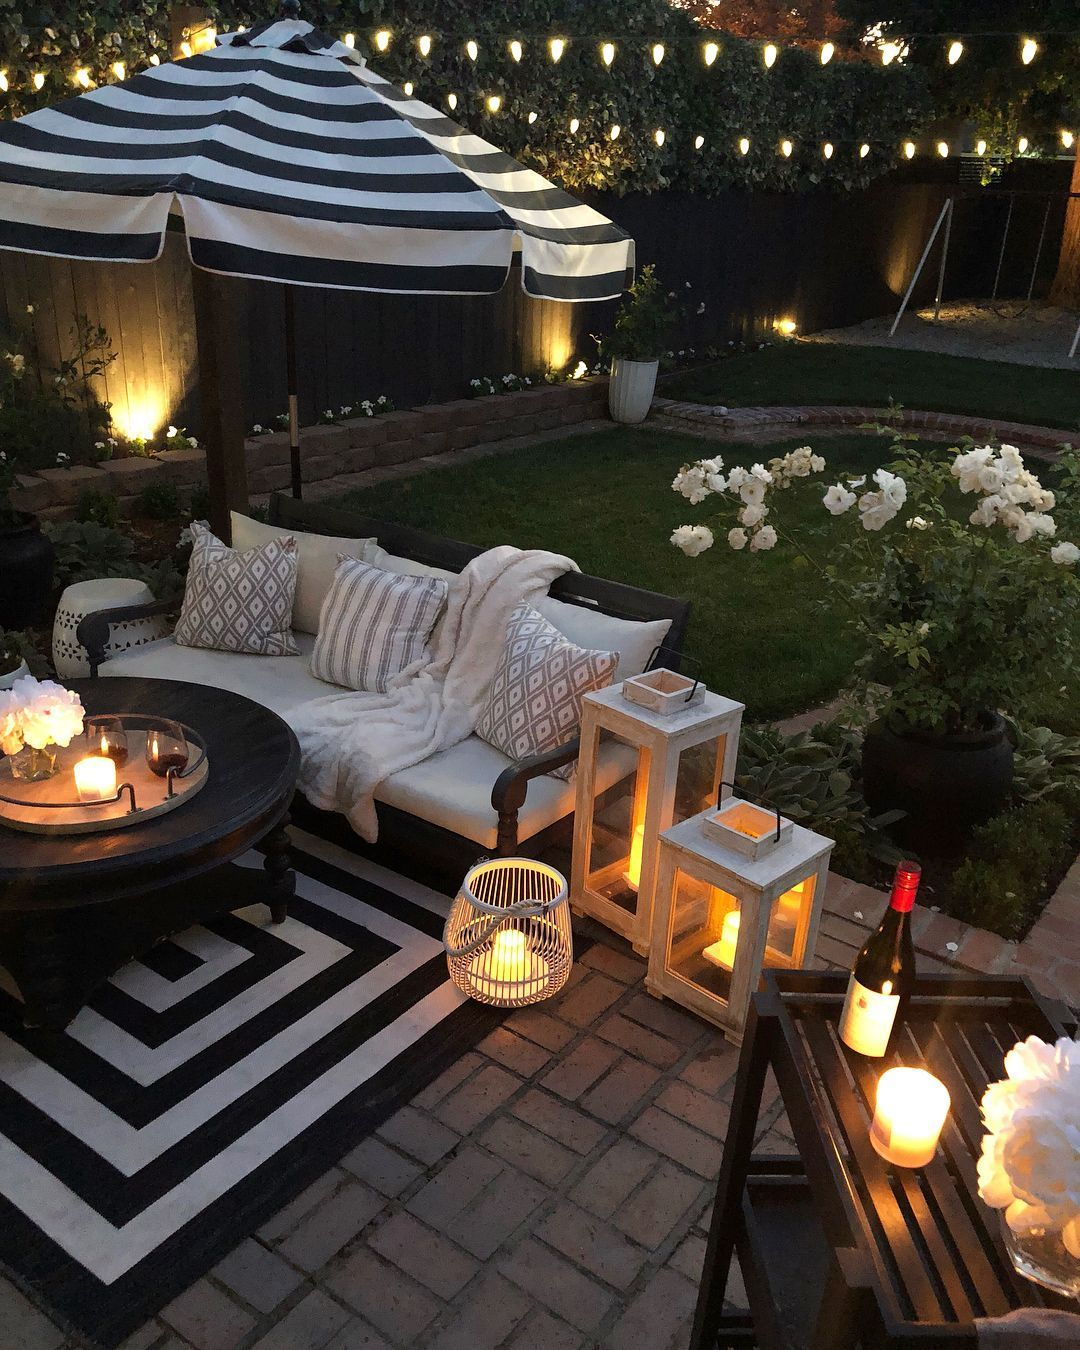 45 Backyard Patio Ideas That Will Amaze Inspire You regarding 13 Awesome Designs of How to Improve Small Backyard Patio Ideas